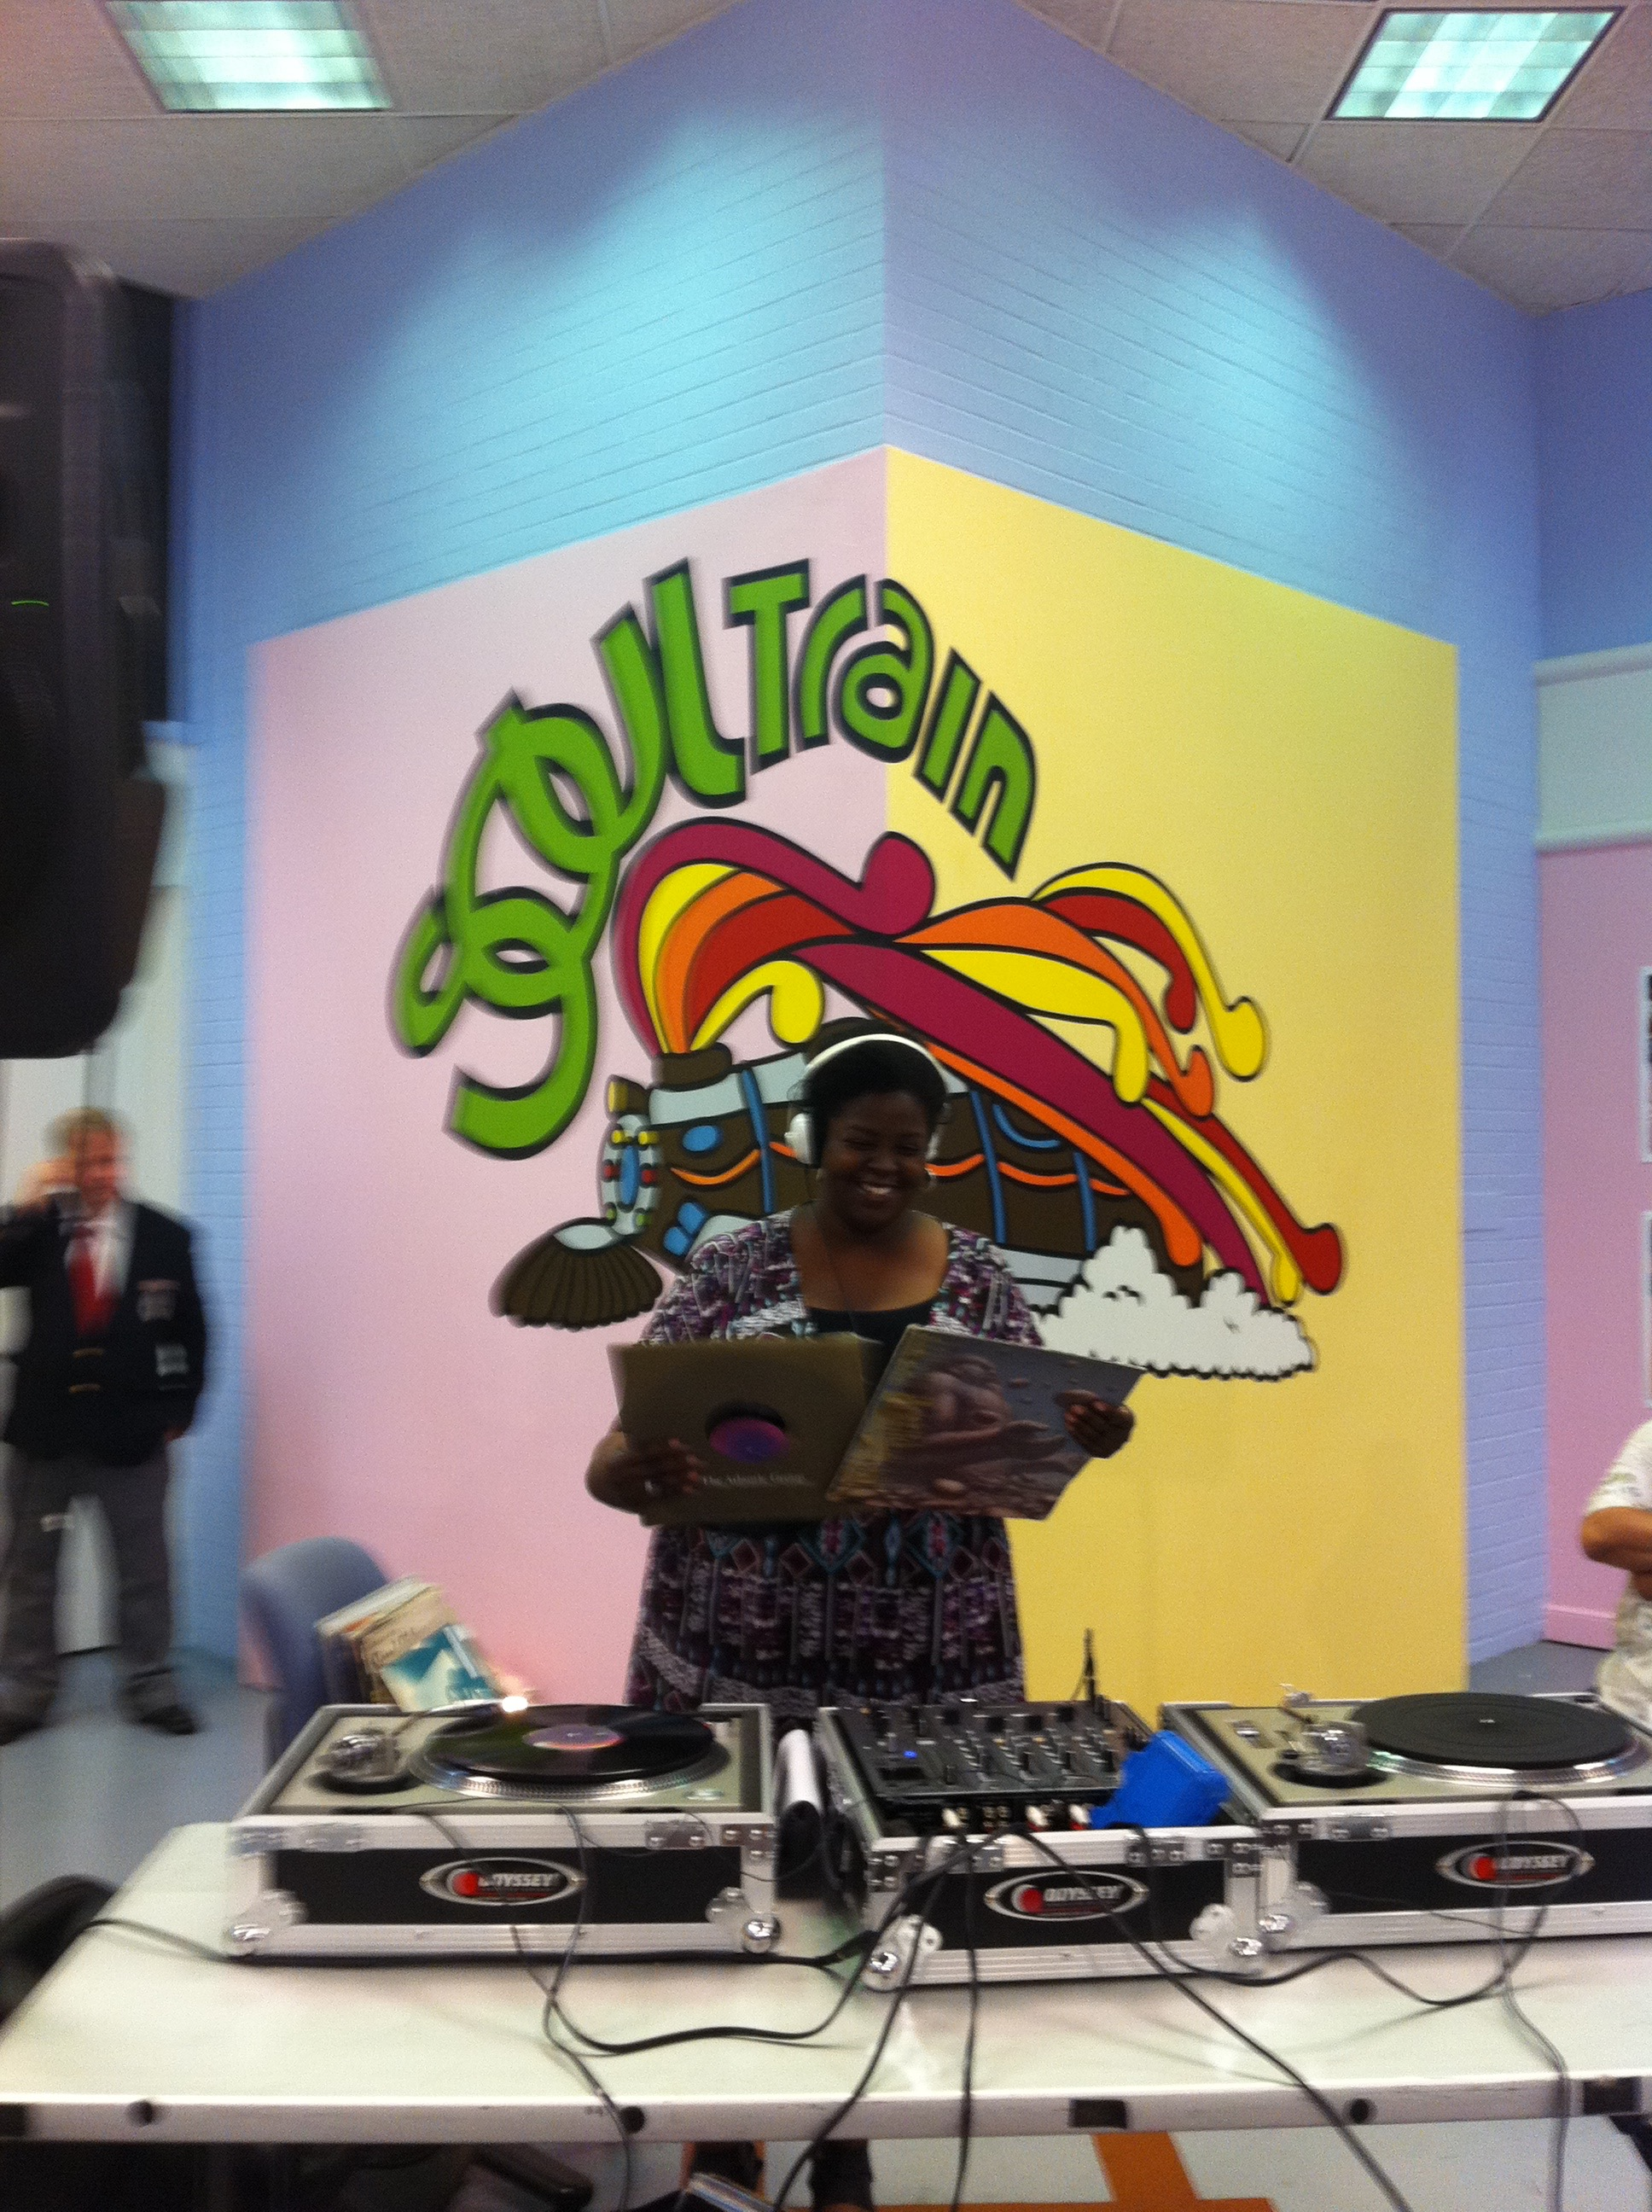 Music Producer, Curator for Soul Train 40th Anniversary DJ Series at the Chicago Visitor Center. DJ Clerical Error in photo.